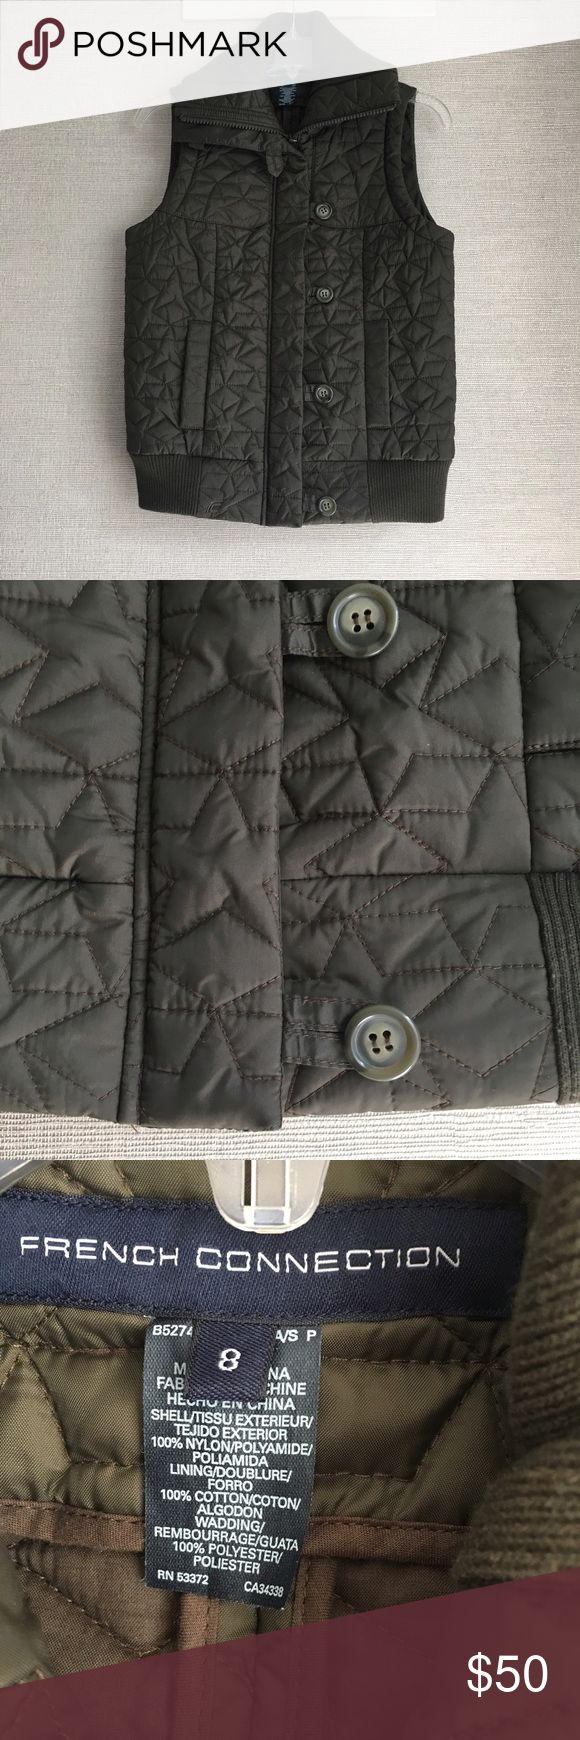 French Connection Quilted Vest in army green EUC - Cold but not enough for a coat? Why not reach for this French Connection Vest, the perfect compromise between a jacket and coat. Featuring a star pattern with a hidden zip and loop placket detailing, this vest is focused on the finer details. French Connection Jackets & Coats Vests